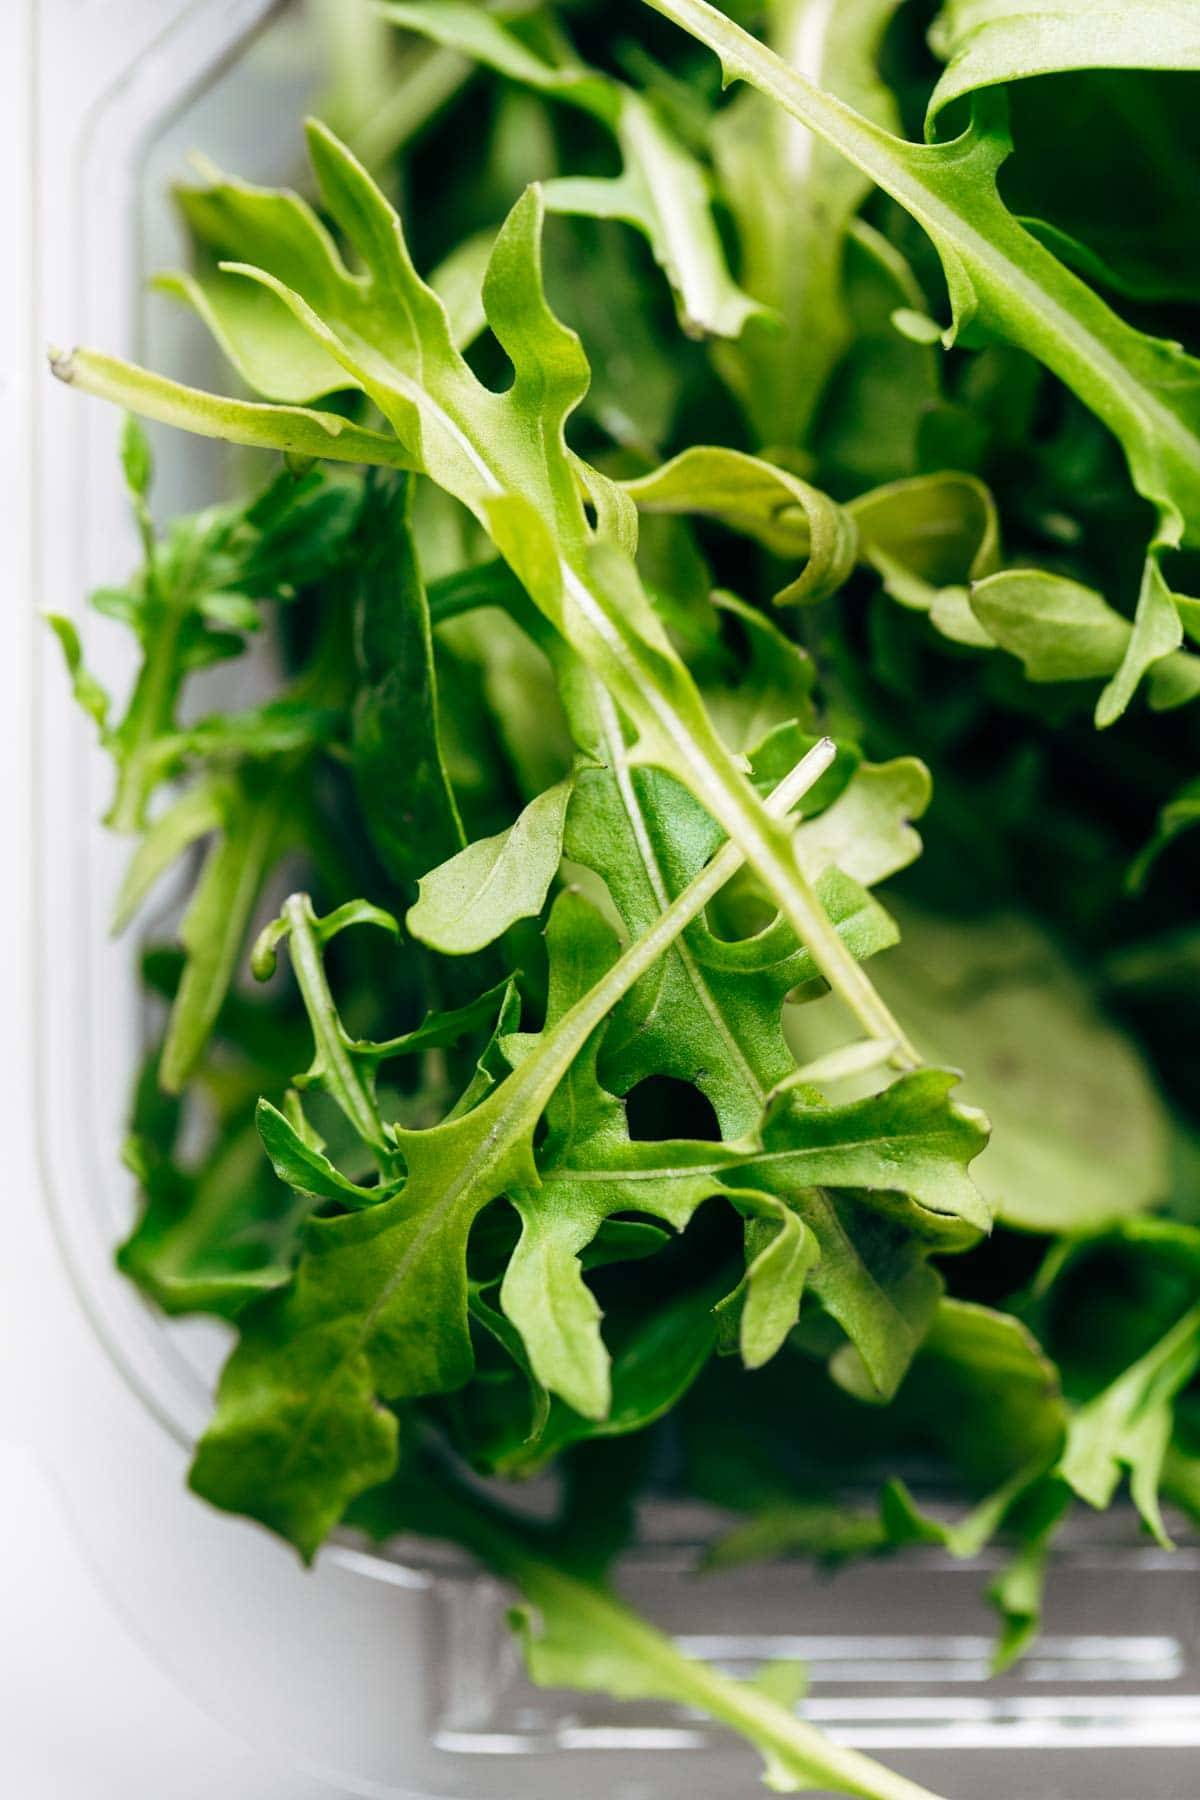 Arugula close up.